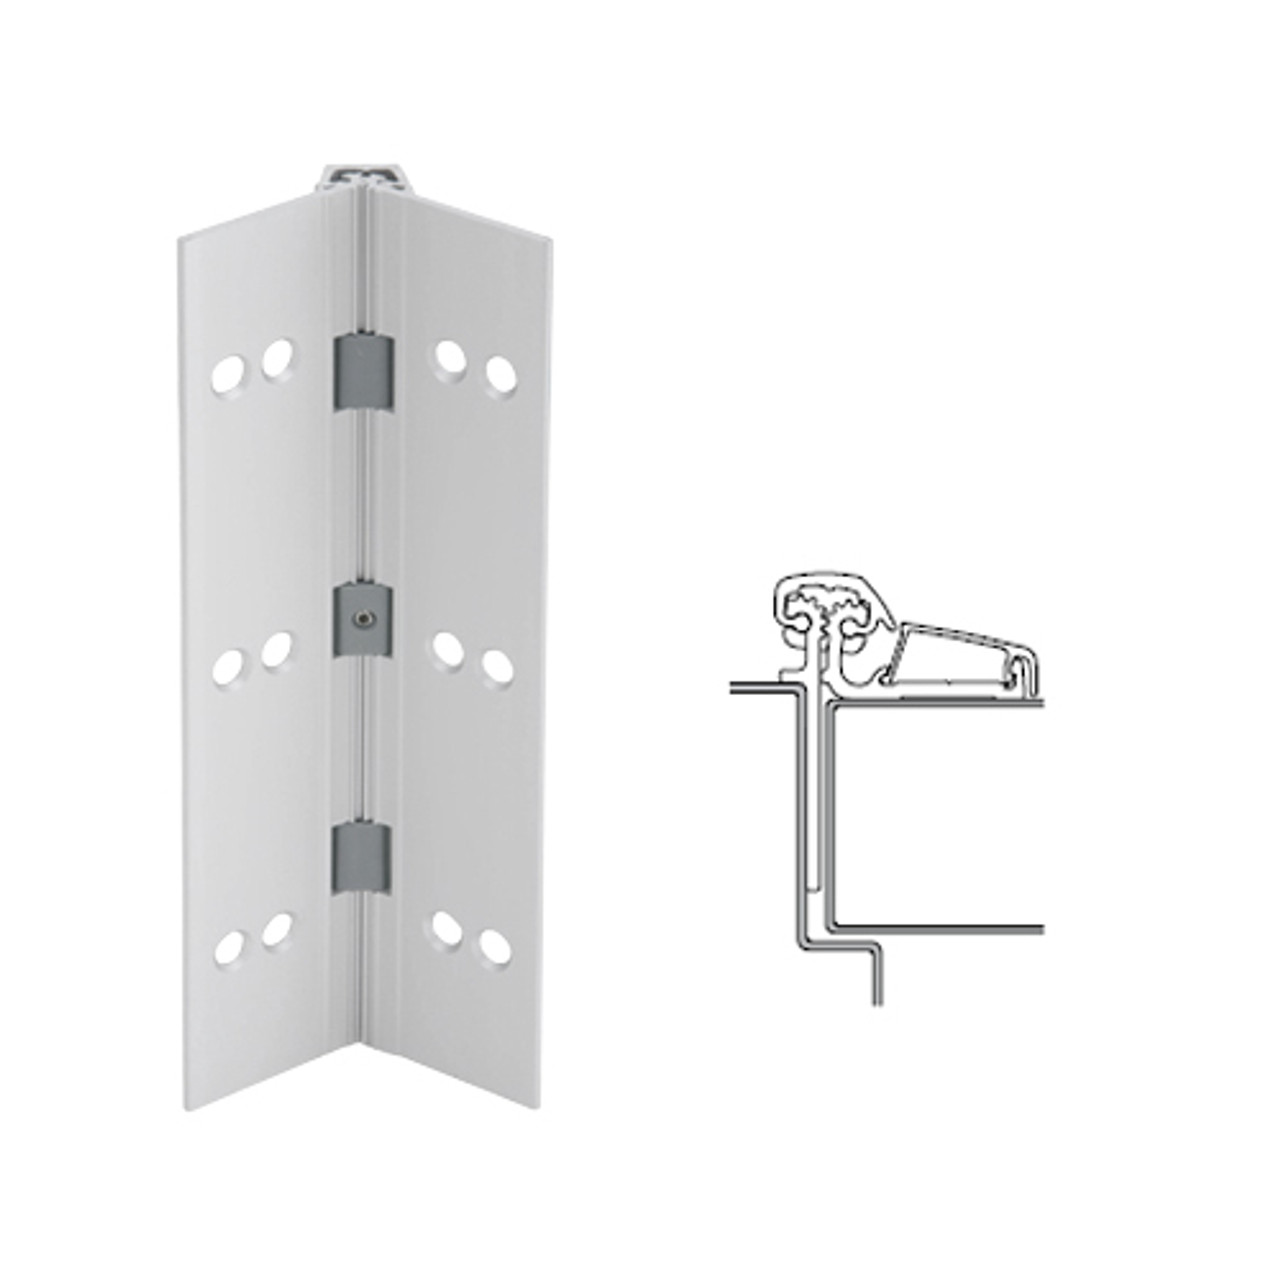 053XY-US28-120-TFWD IVES Adjustable Half Surface Continuous Geared Hinges with Thread Forming Screws in Satin Aluminum